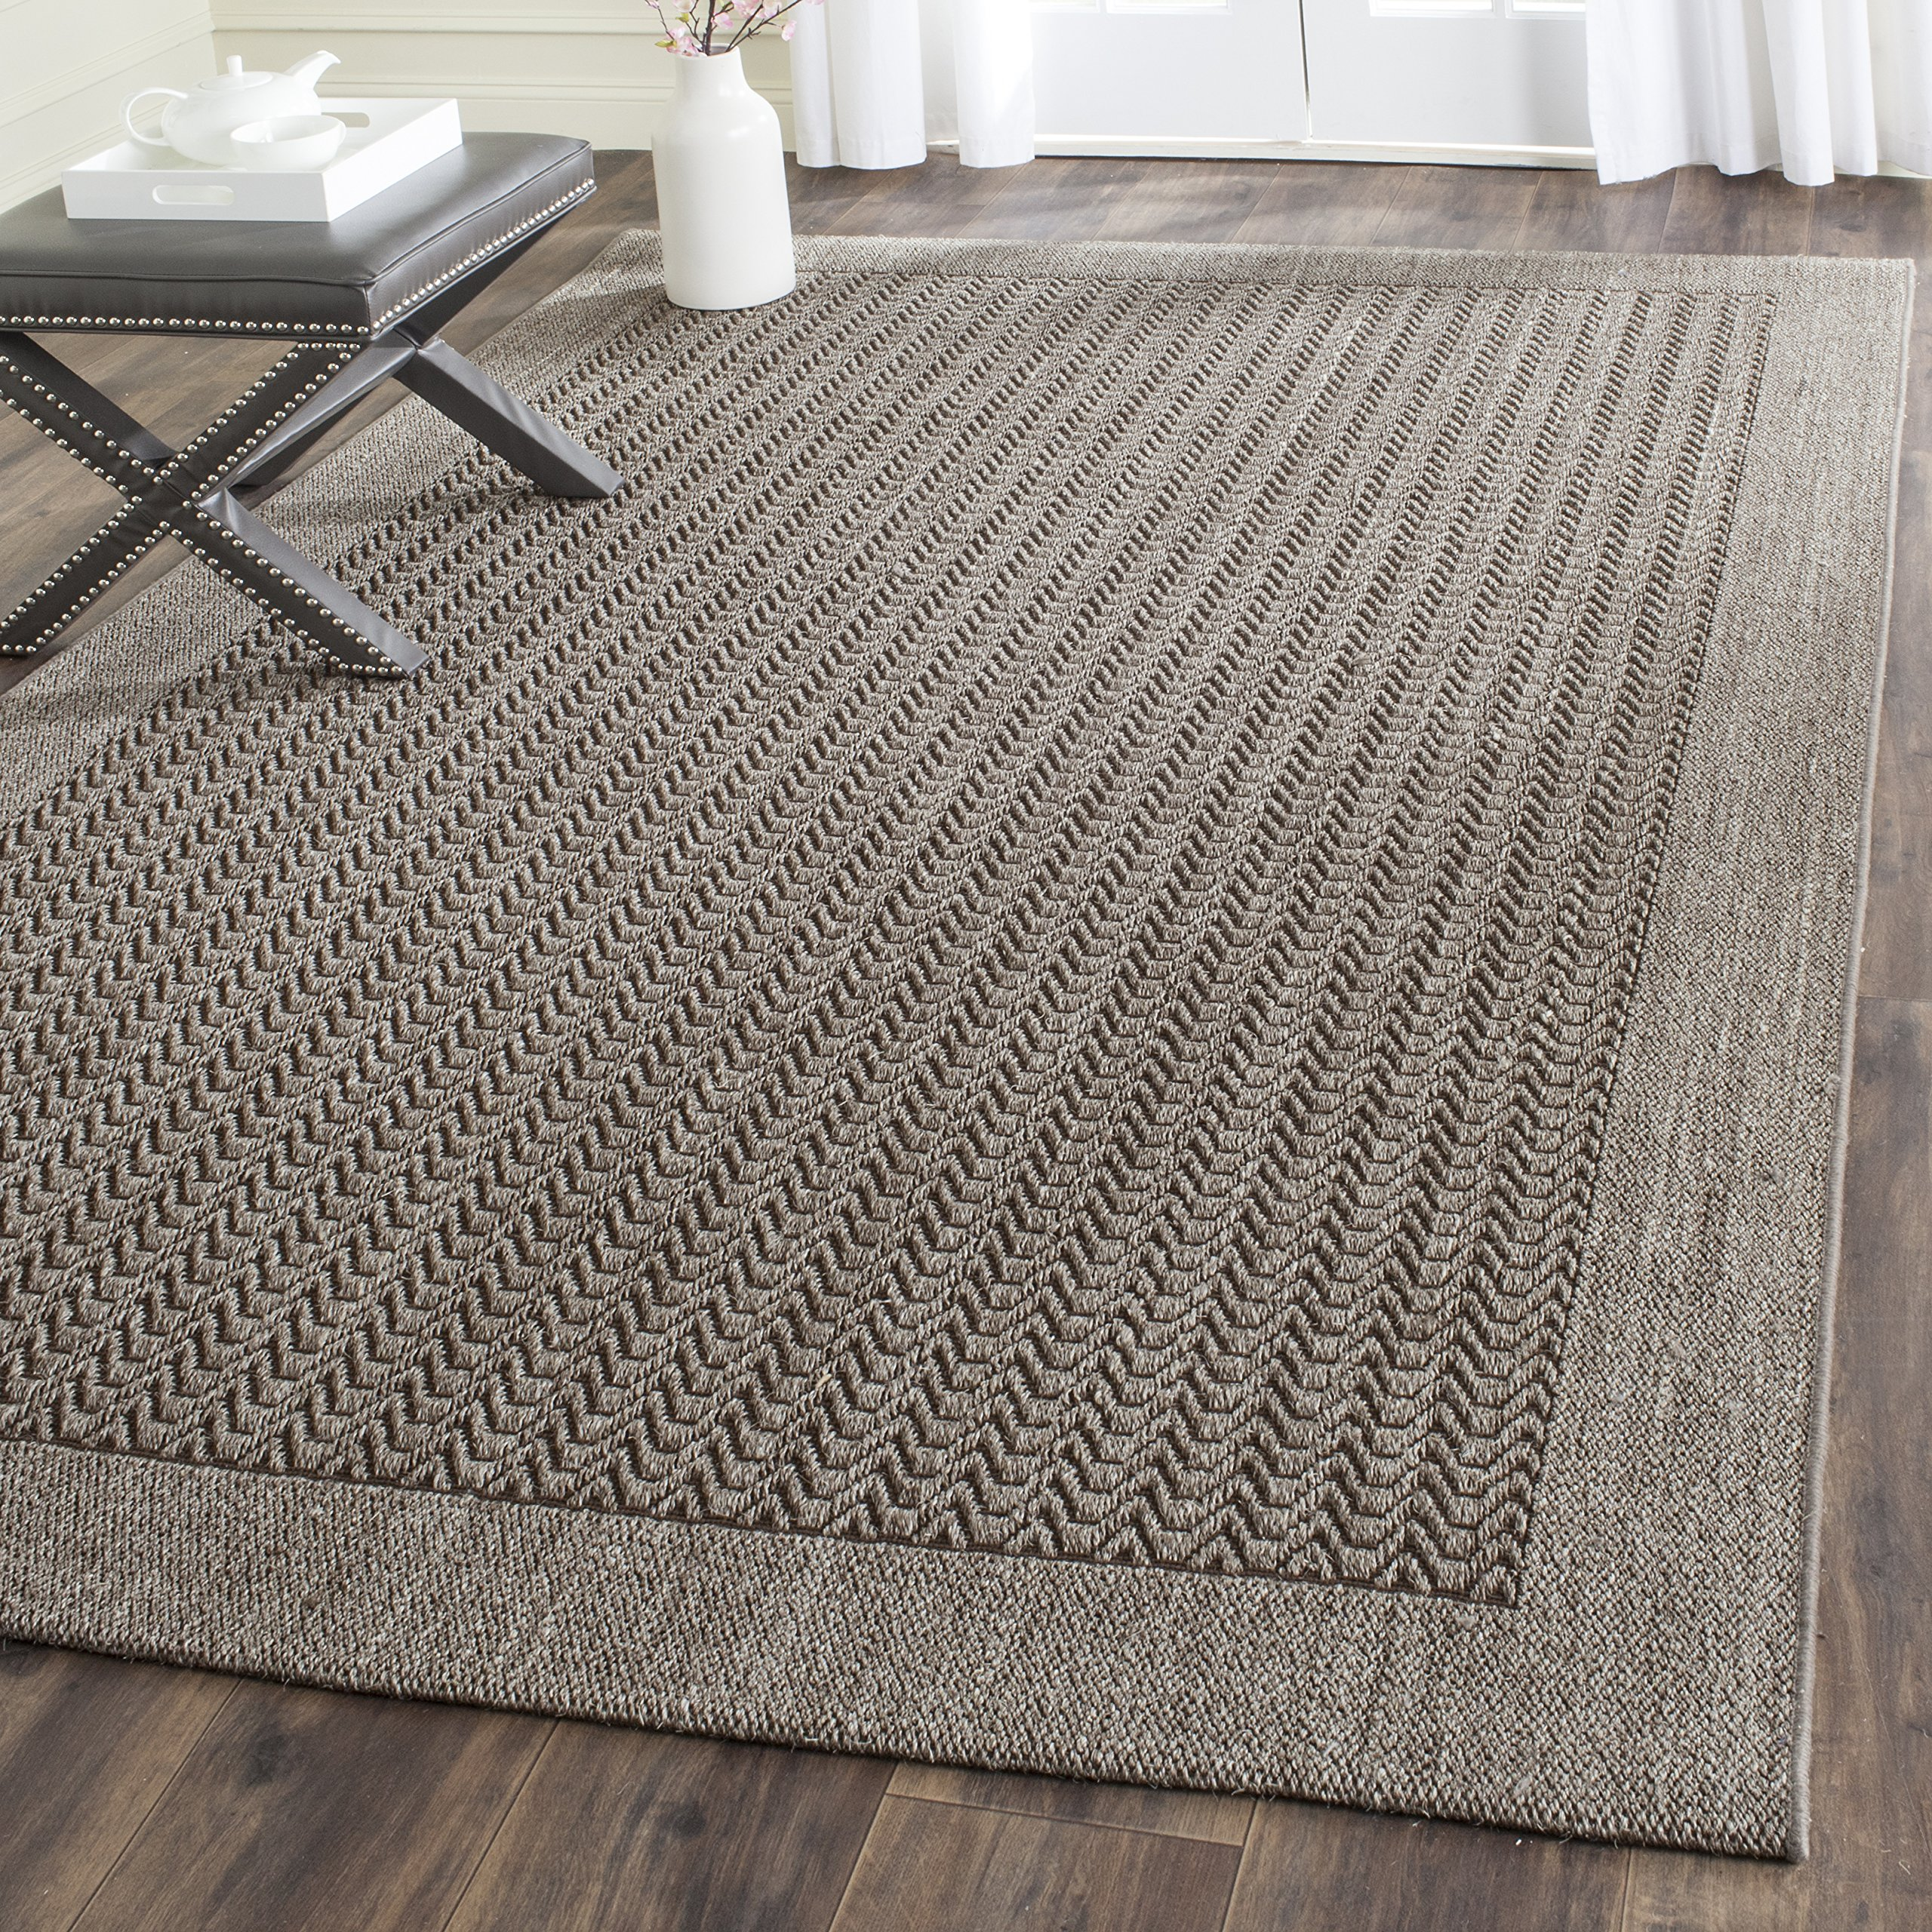 Safavieh Palm Beach Collection PAB321D Silver Sisal & Jute Area Rug (5' x 8') by Safavieh